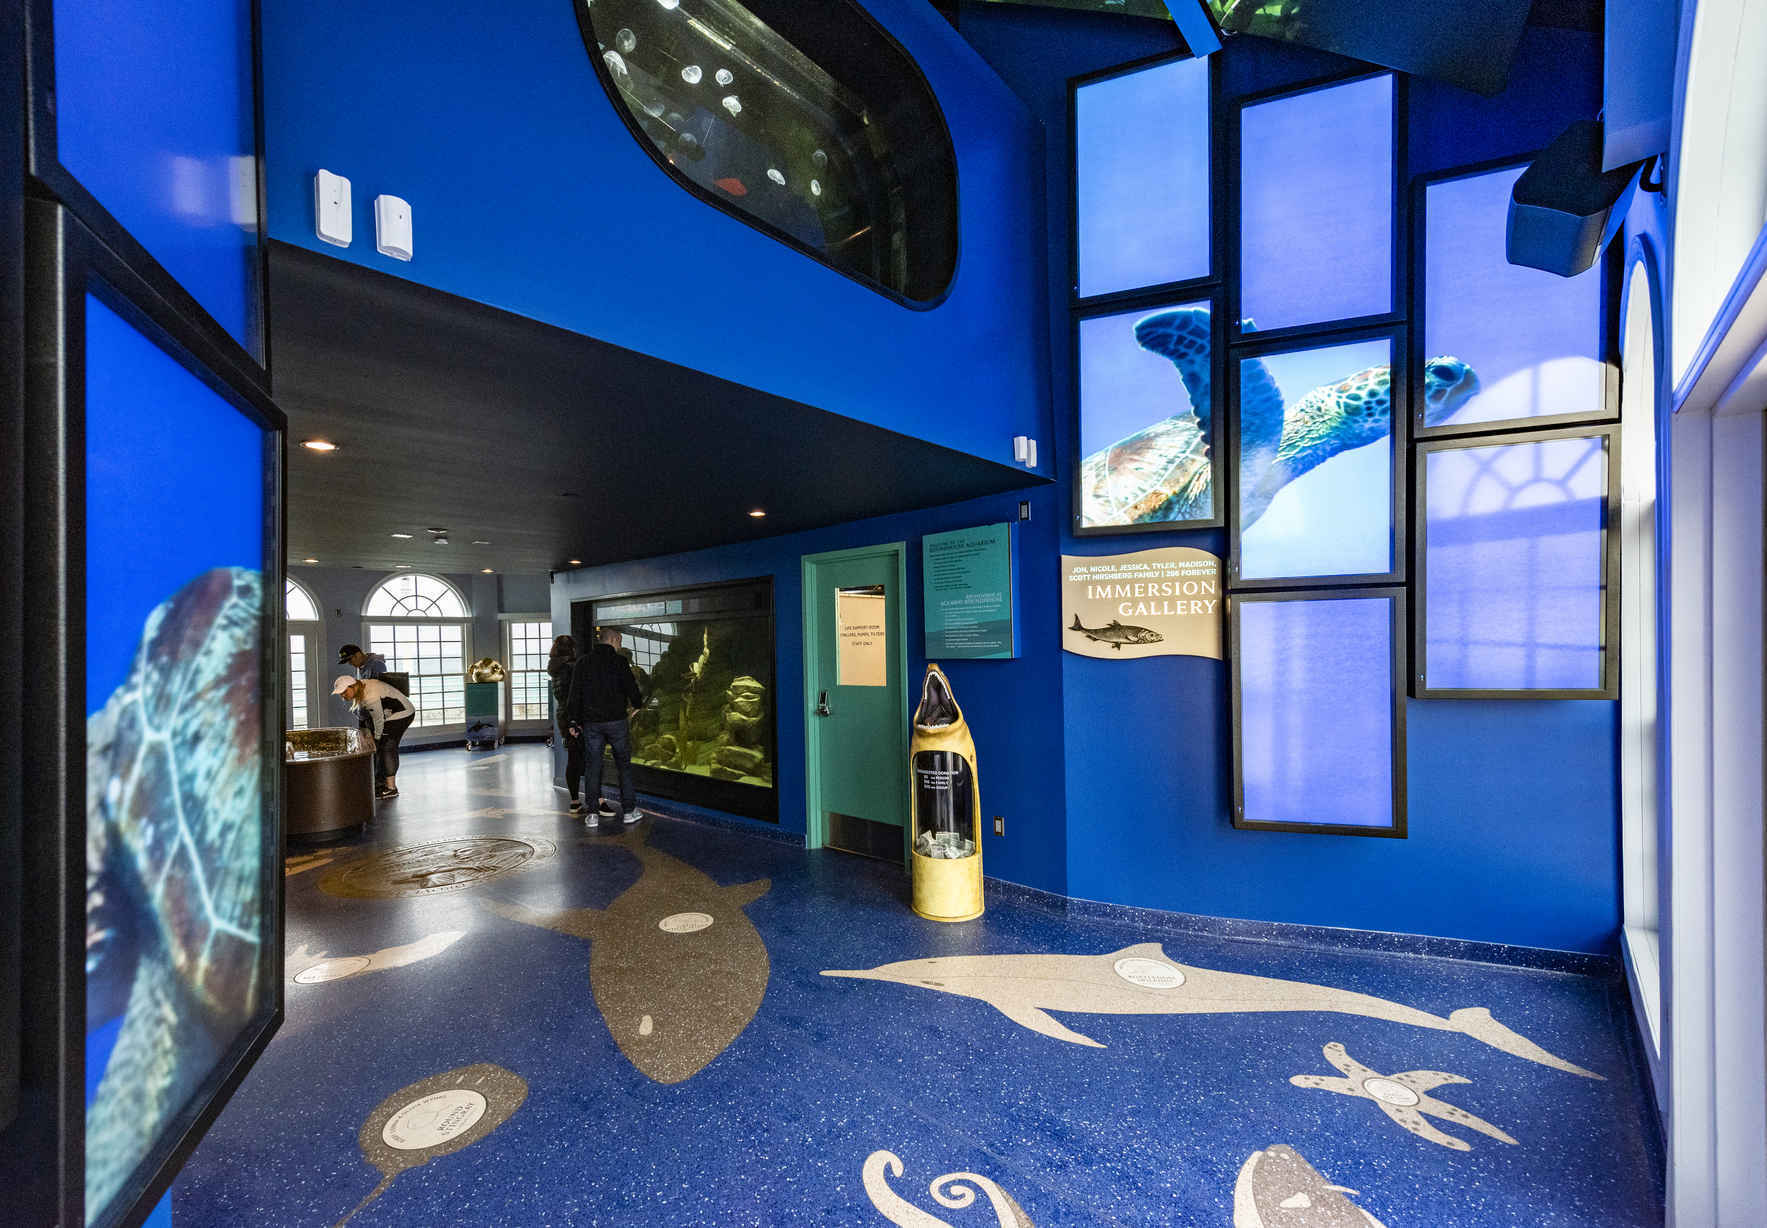 July 11 - Reserve your free entry to the Roundhouse Aquarium image